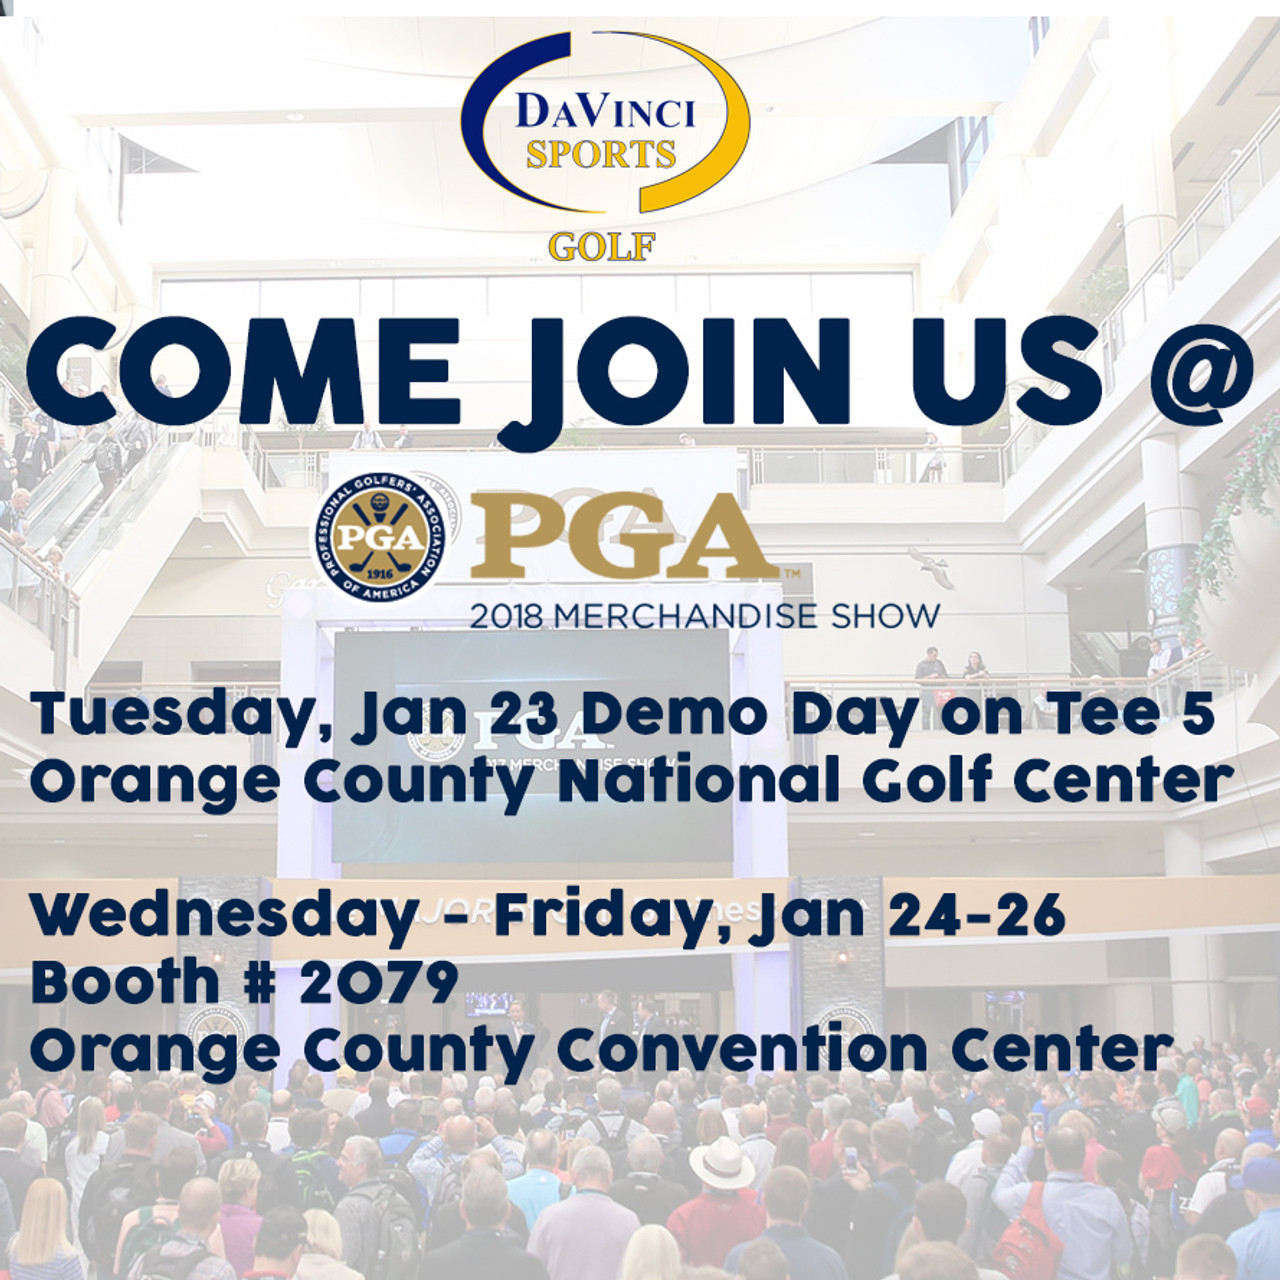 COME JOIN US AT THE PGA 2018 MERCHANDISING SHOW